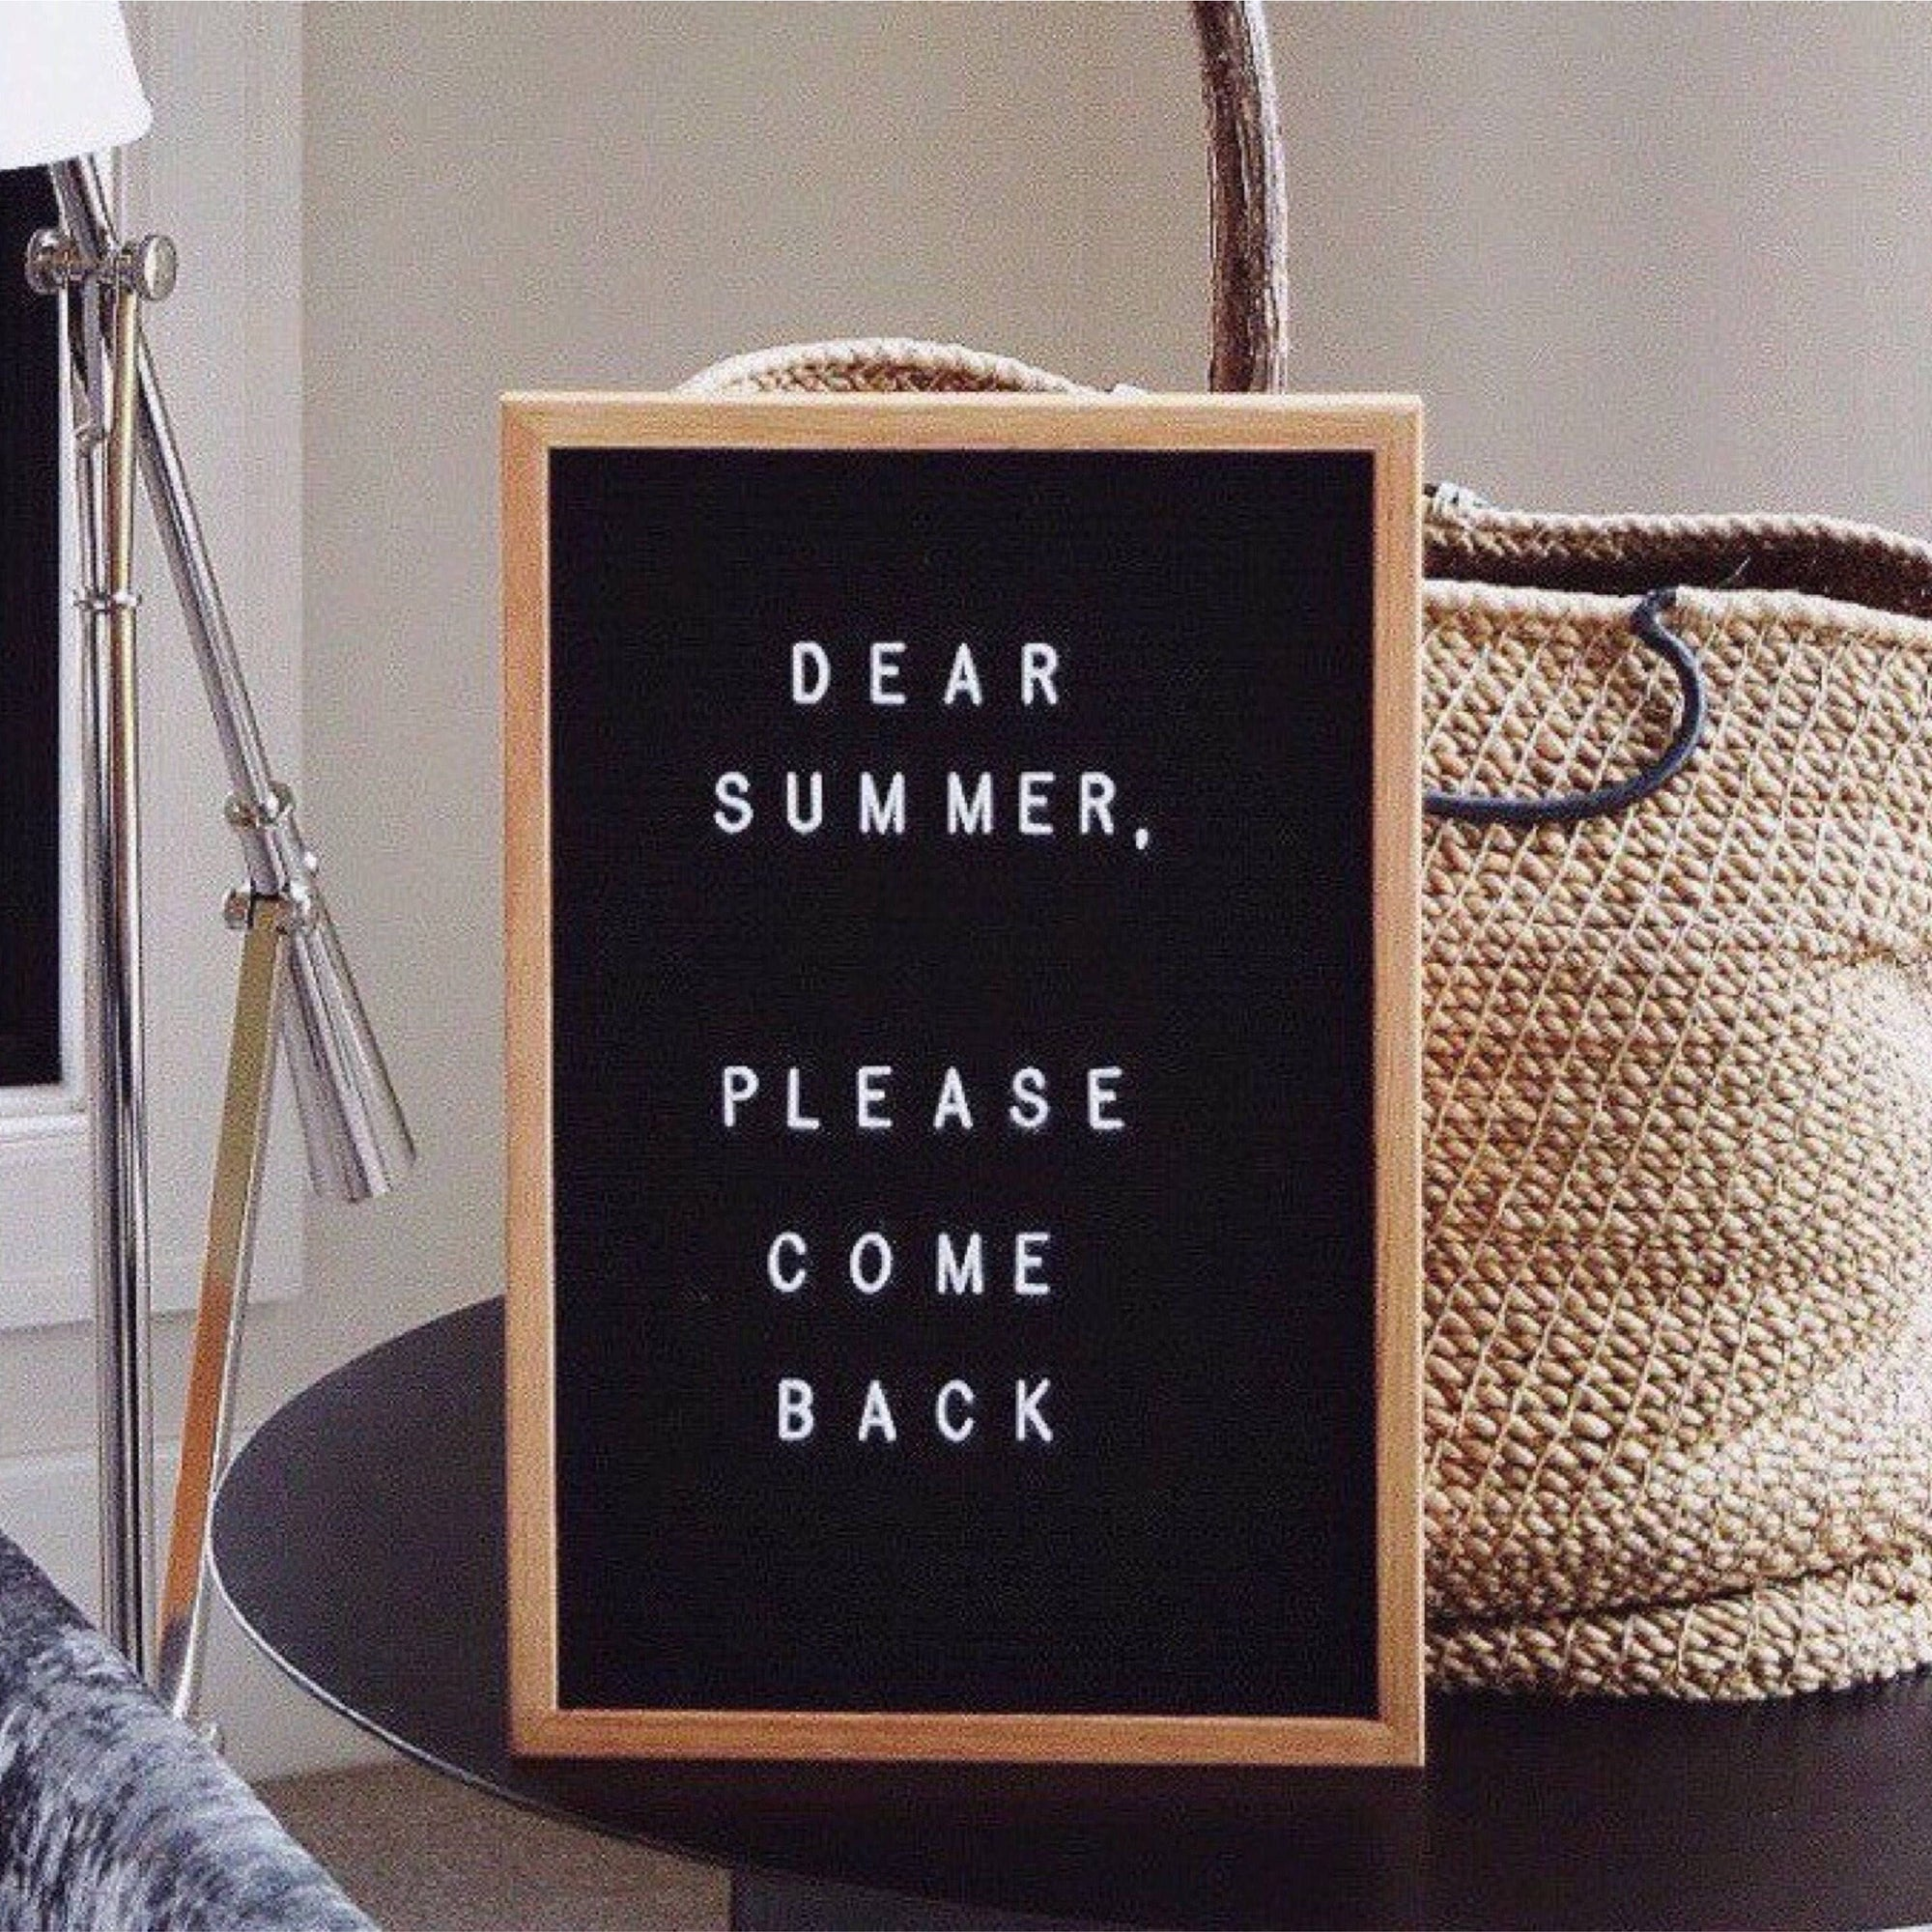 12x18 Felt Letter Board|Oak Frame Letterboards | Grey Black White Felt Letter Board with 340 White Letters | Felt Message Board | 12x18 Felt Sign - Laura Baby and Company